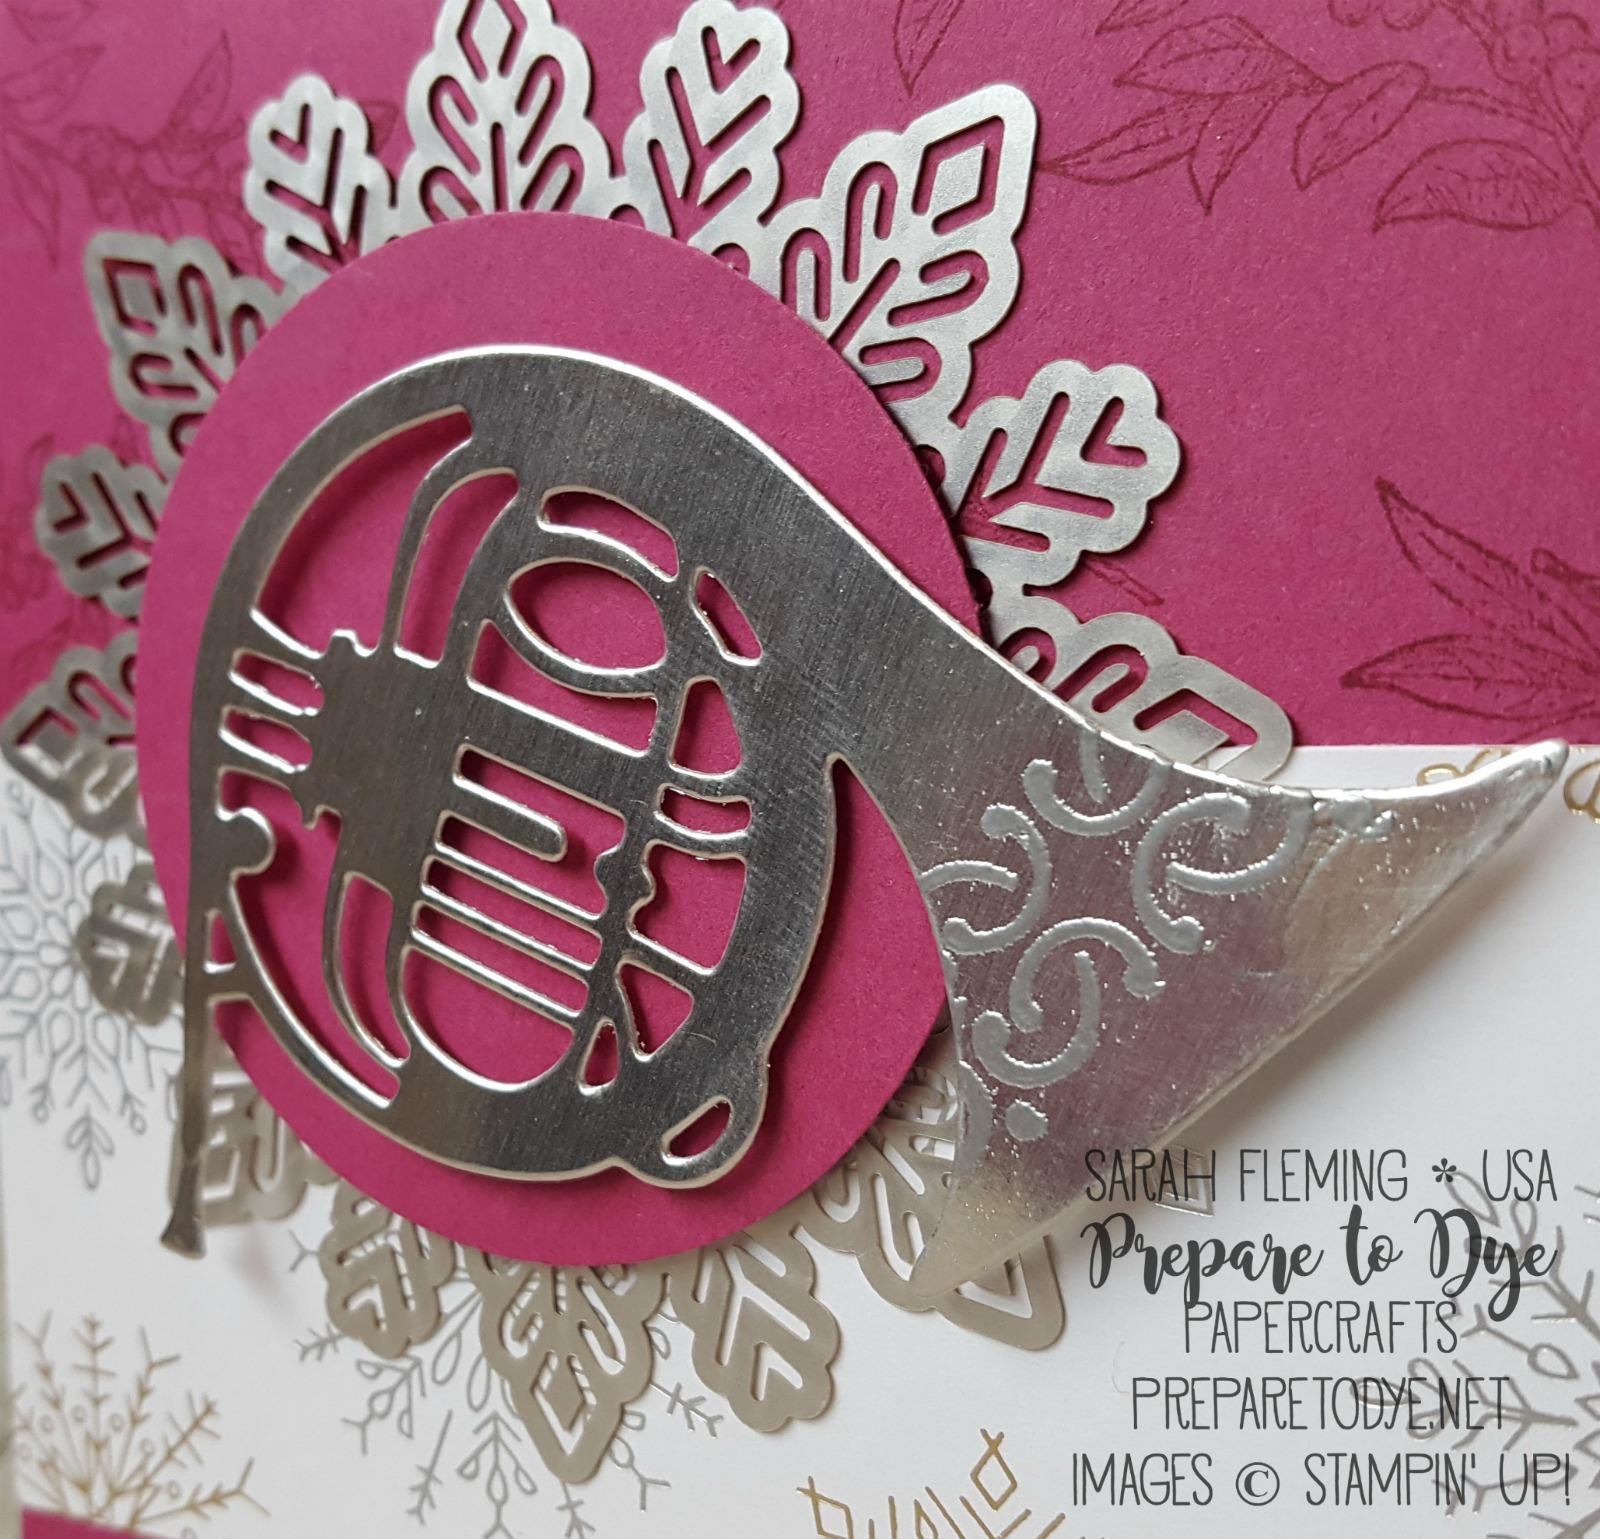 Stampin' Up! Musical Season bundle with Year of Cheer paper, Foil Snowflakes - handmade Christmas card - Sarah Fleming - Prepare to Dye Papercrafts